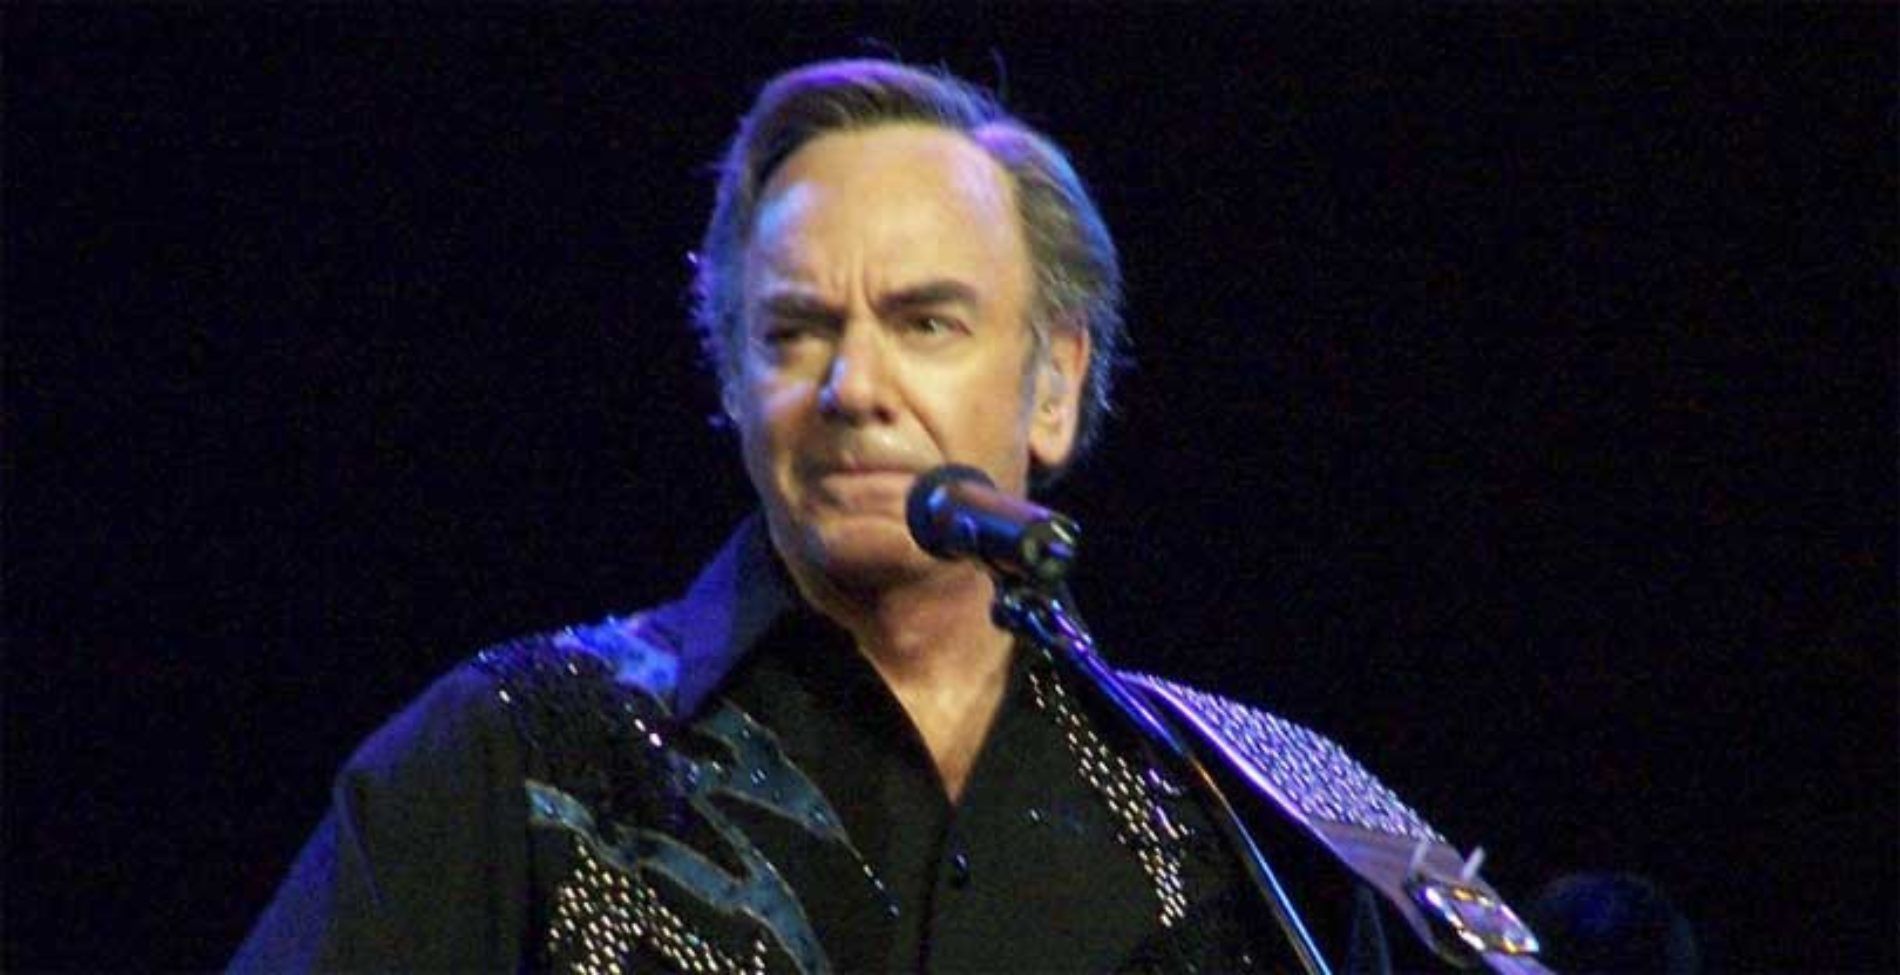 Neil Diamond avslutter turnelivet etter Parkinson-diagnose